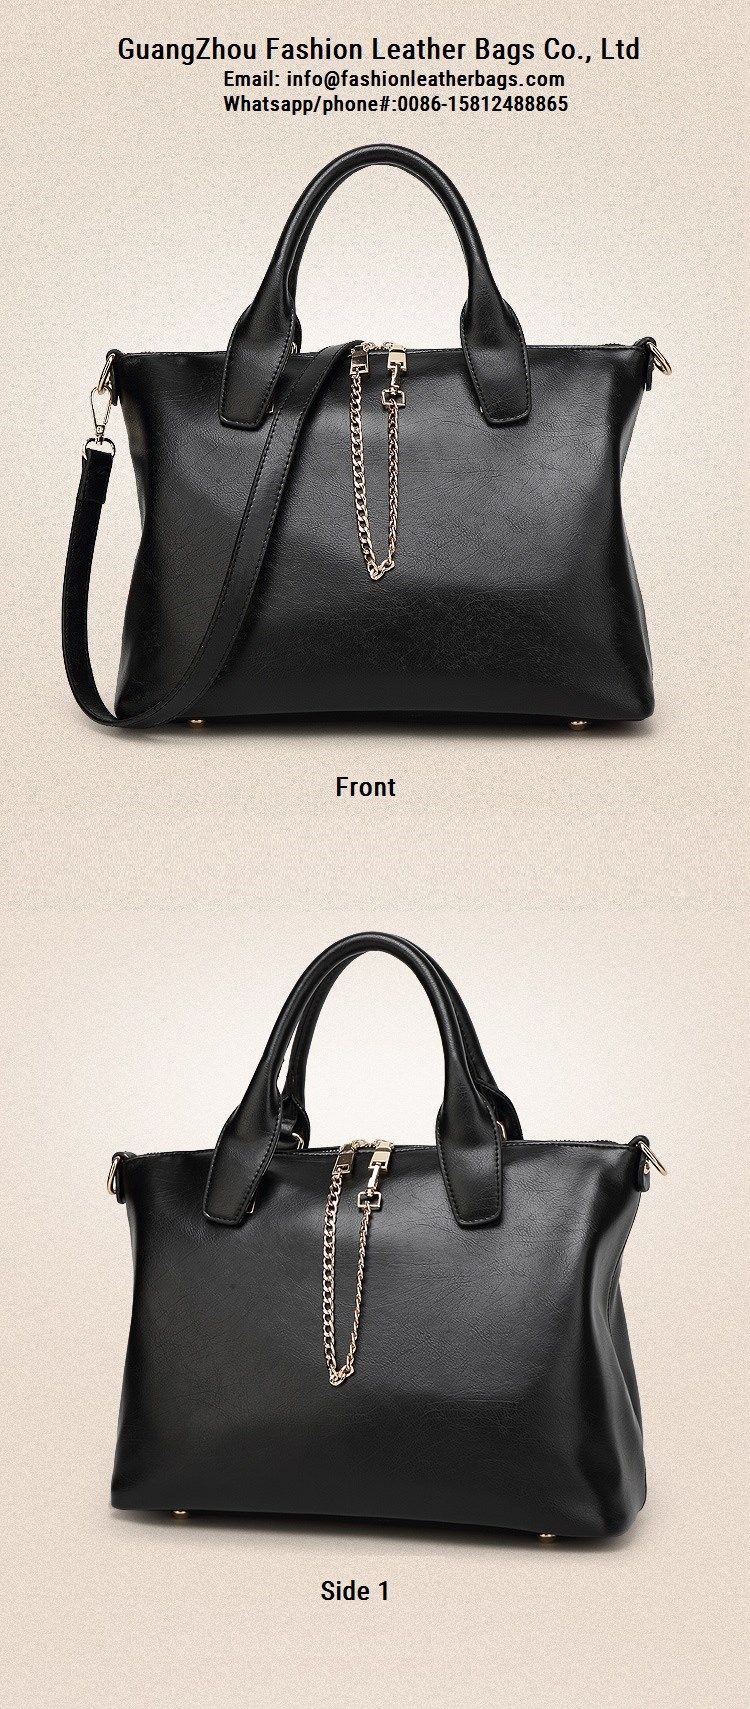 c97f0092af7 2018 handbags women fashion bags sets 3PCS in 1 OEM bag supplier made in  china C-SWY-06